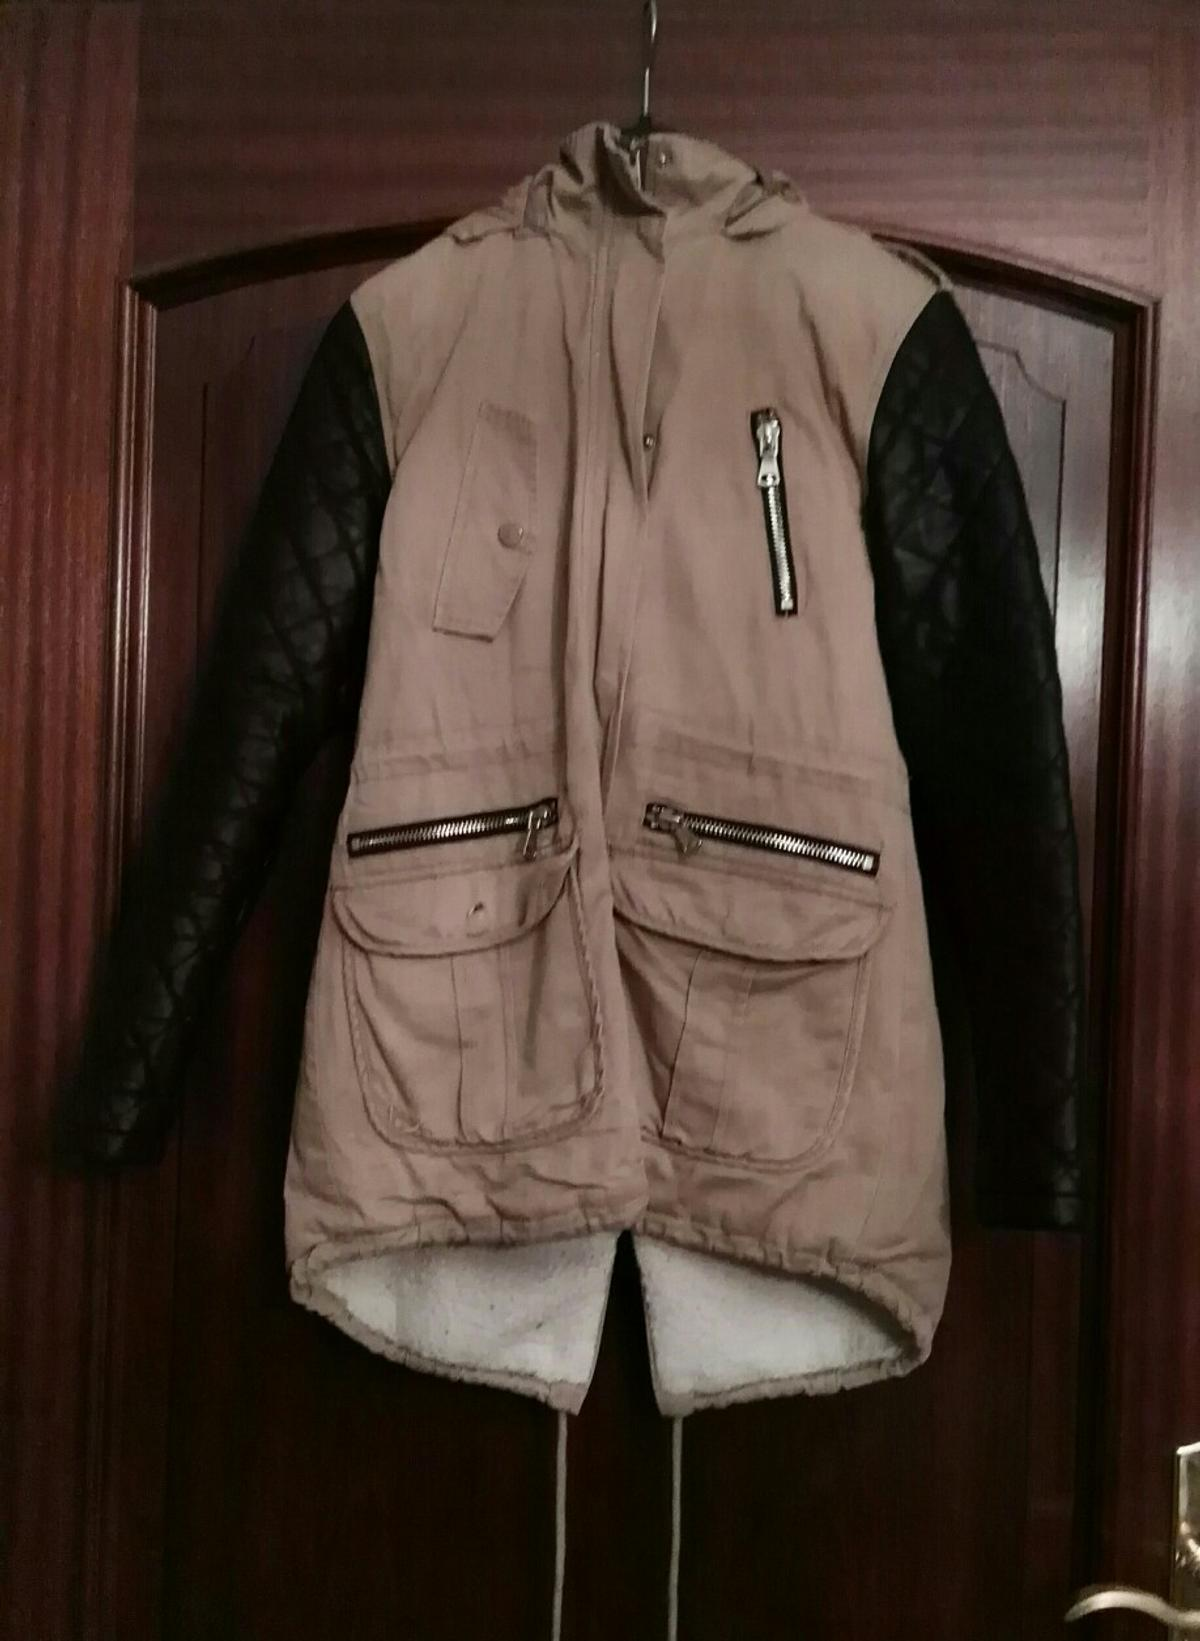 39c674a719def1 Jacke ( Best Emilie) in 65207 Wiesbaden for €5.00 for sale - Shpock